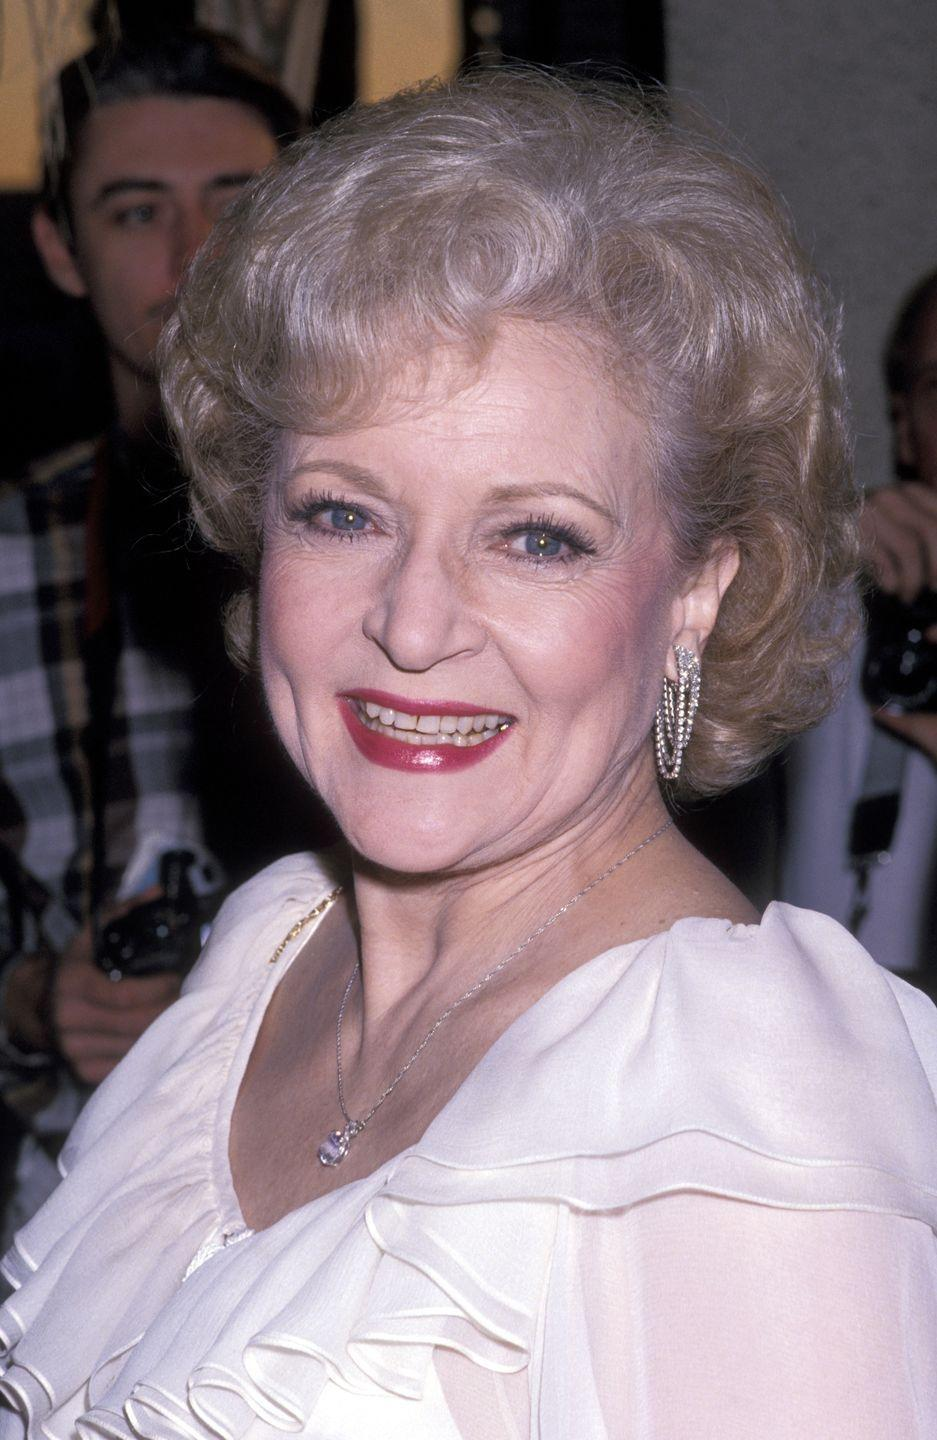 """<p>White is a huge animal lover, and once told the <em><a href=""""http://www.guinnessworldrecords.com/news/2013/9/q-and-a-betty-white-on-her-world-record-her-favorite-works-and-getting-started-on-tv-50966/"""" rel=""""nofollow noopener"""" target=""""_blank"""" data-ylk=""""slk:Guinness Book of World Records"""" class=""""link rapid-noclick-resp"""">Guinness Book of World Records</a></em> that two of her favorite roles were, """"The <em>Pet Set</em> and <em>Golden Girls</em>, just to name a few. Especially the former, as I wrote and produced it and could have on any animals I wanted."""" She also said if she wasn't an actress, she would have been a zookeeper. <br></p>"""